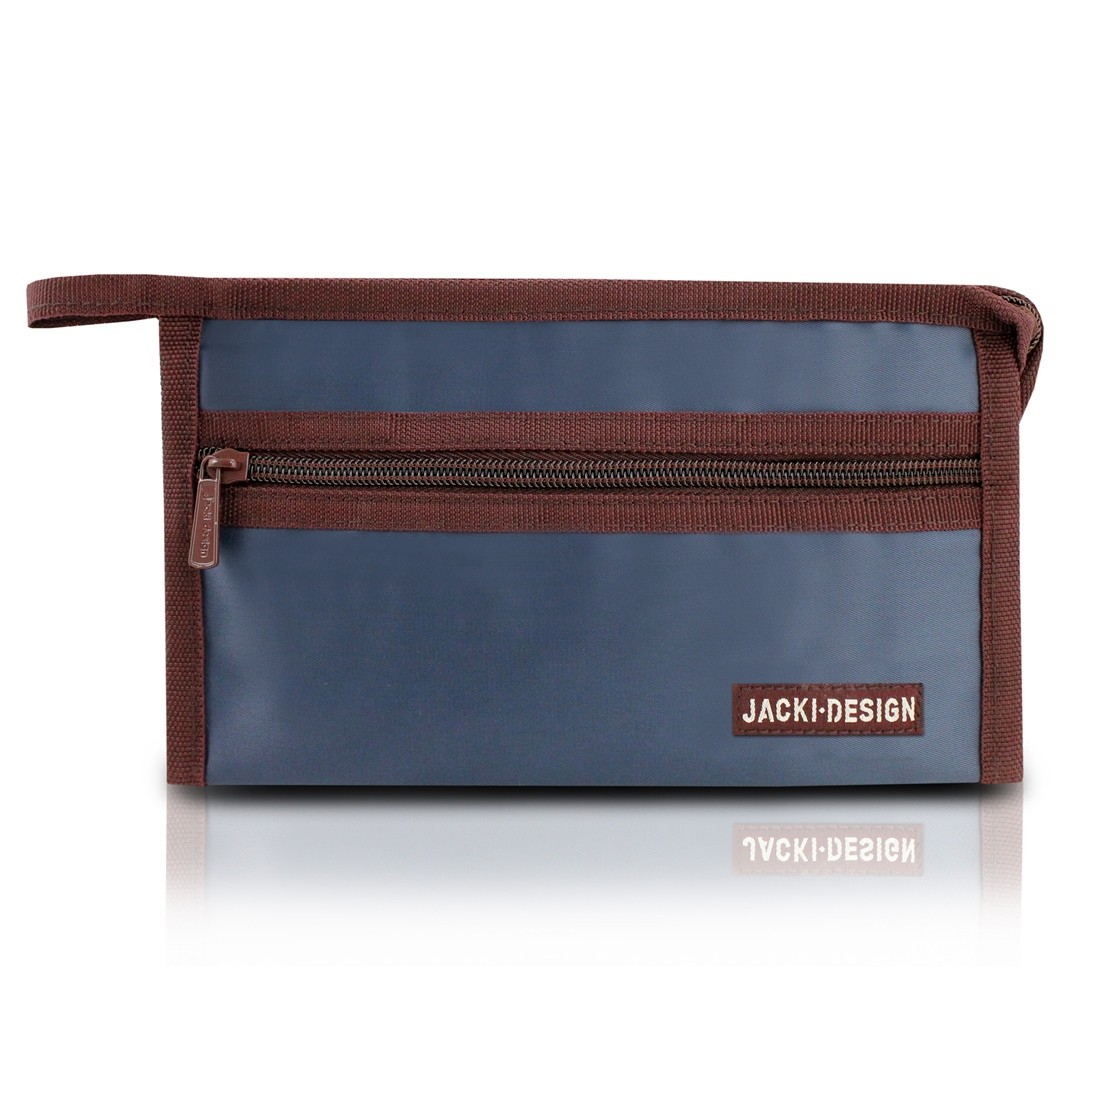 Necessaire Envelope Lisa Essencial III Jacki Design